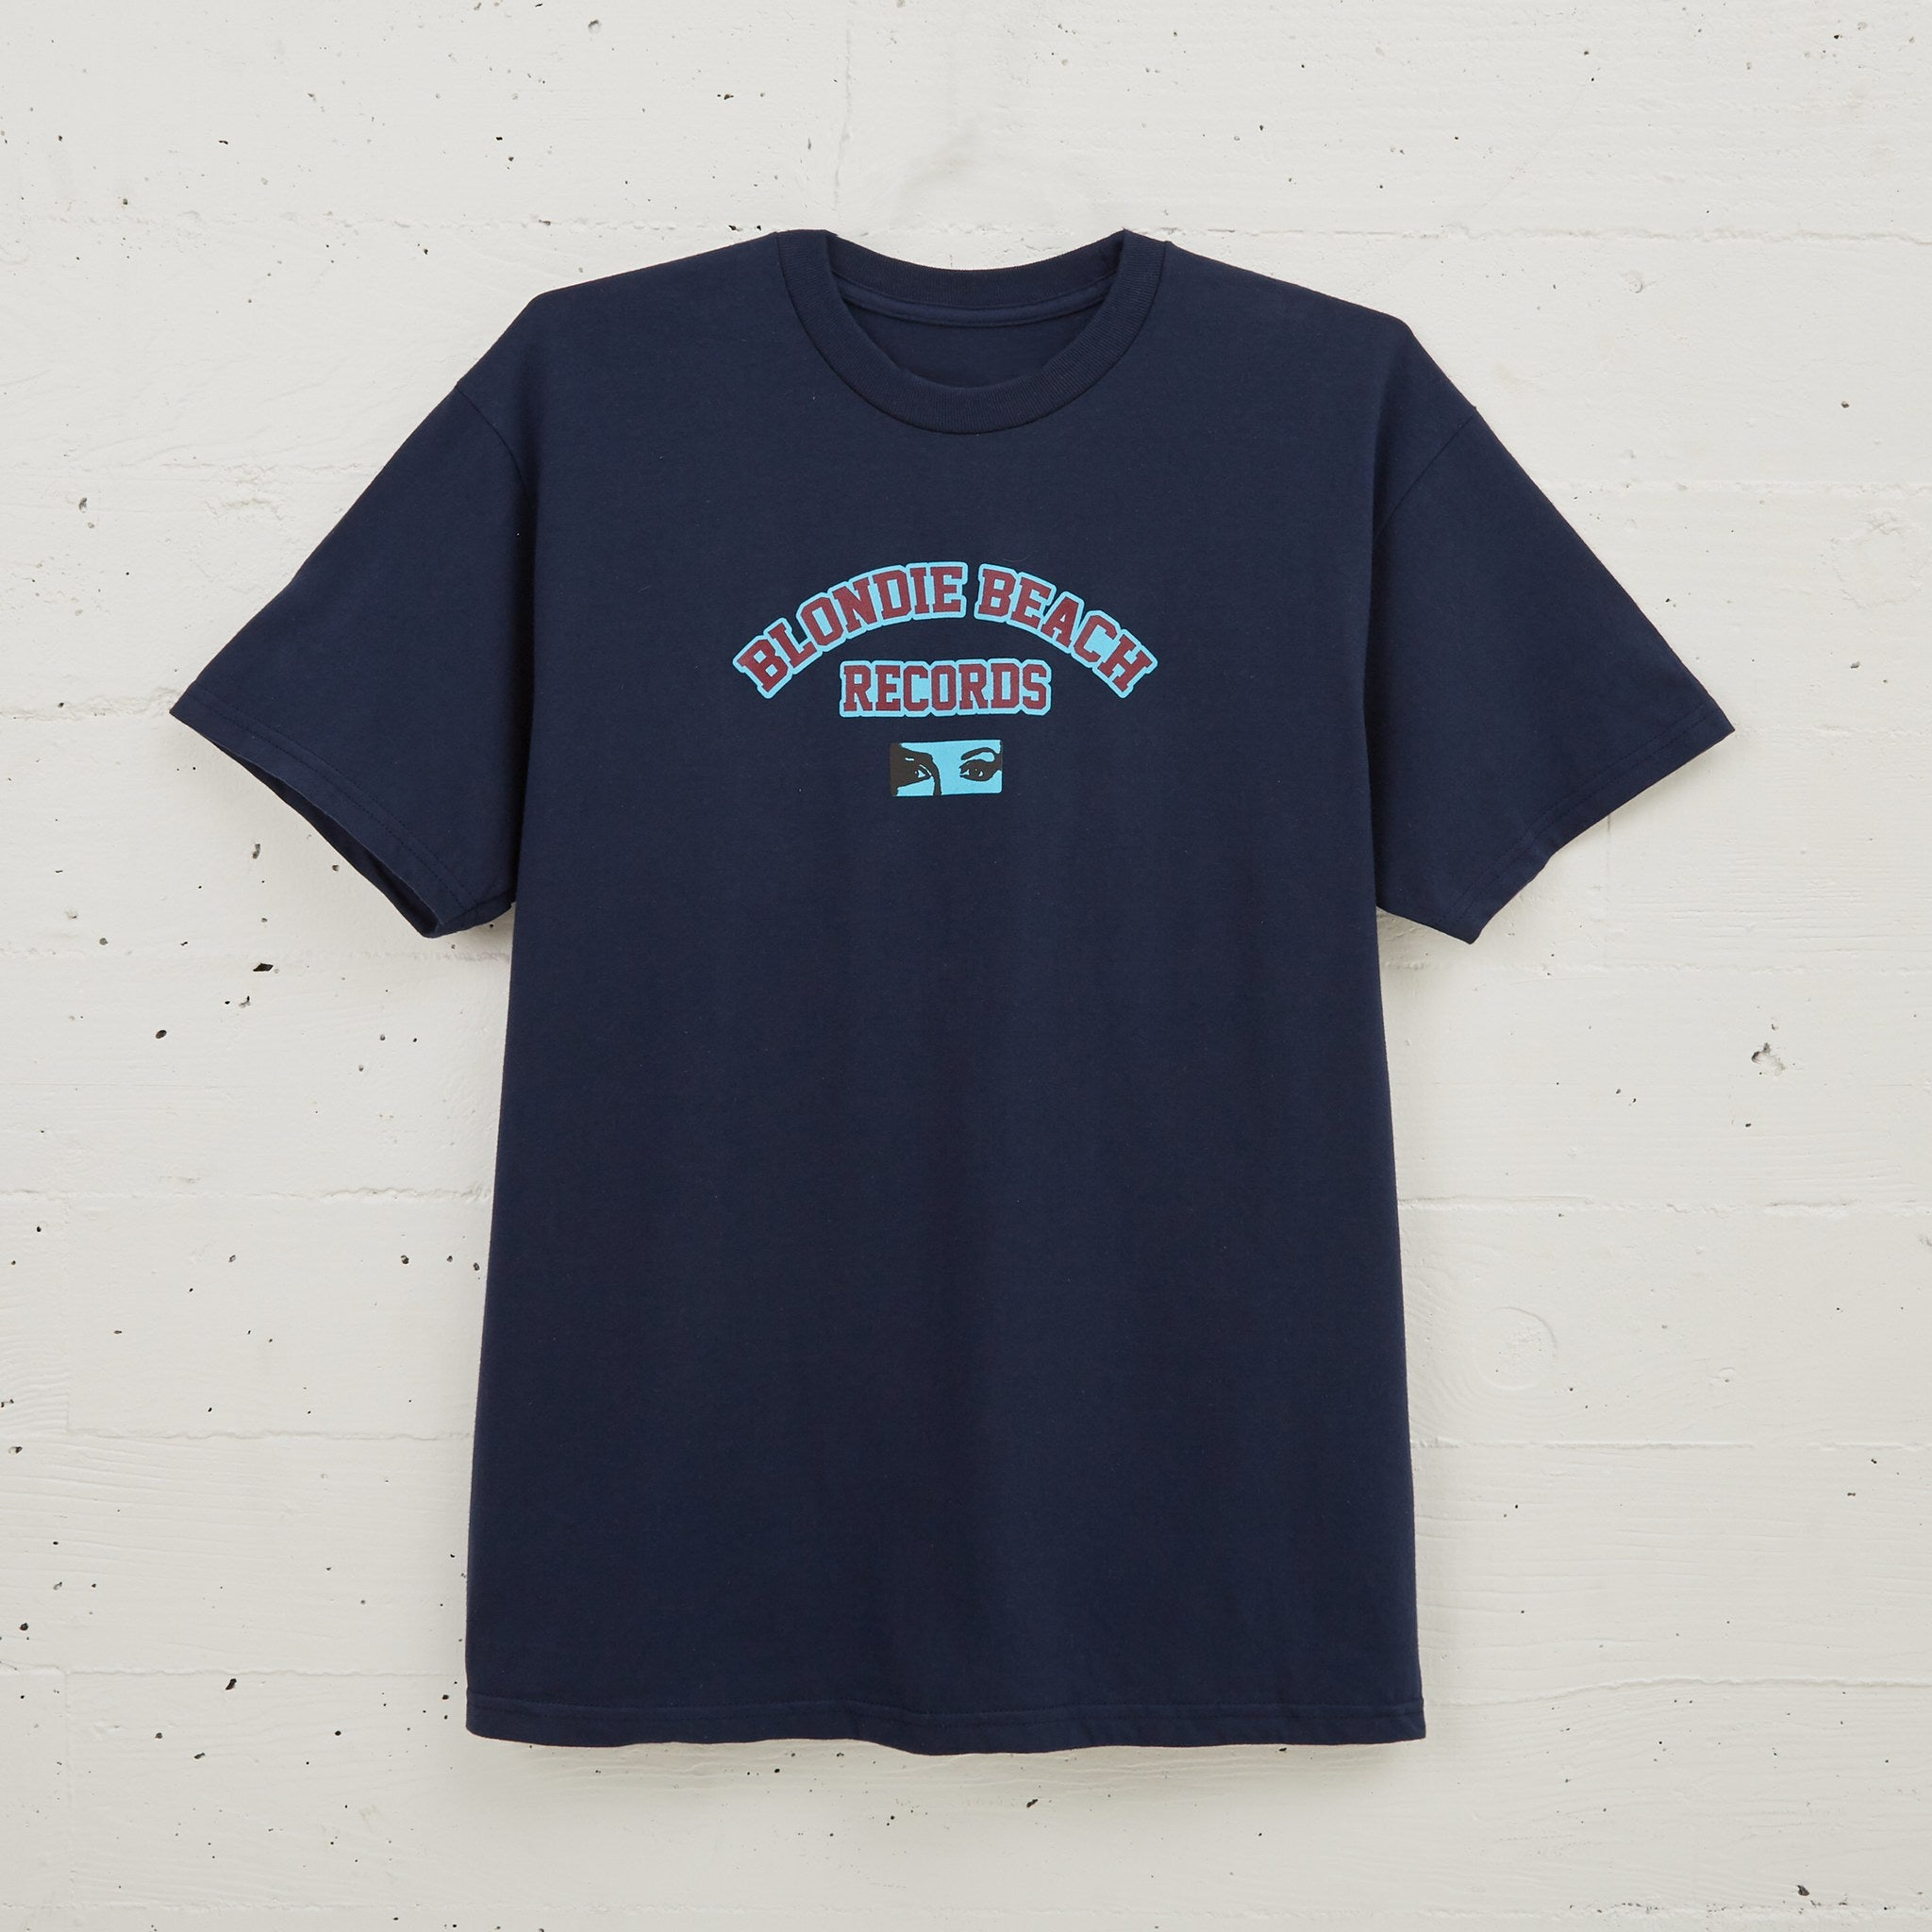 EYES T-SHIRT - BLUE